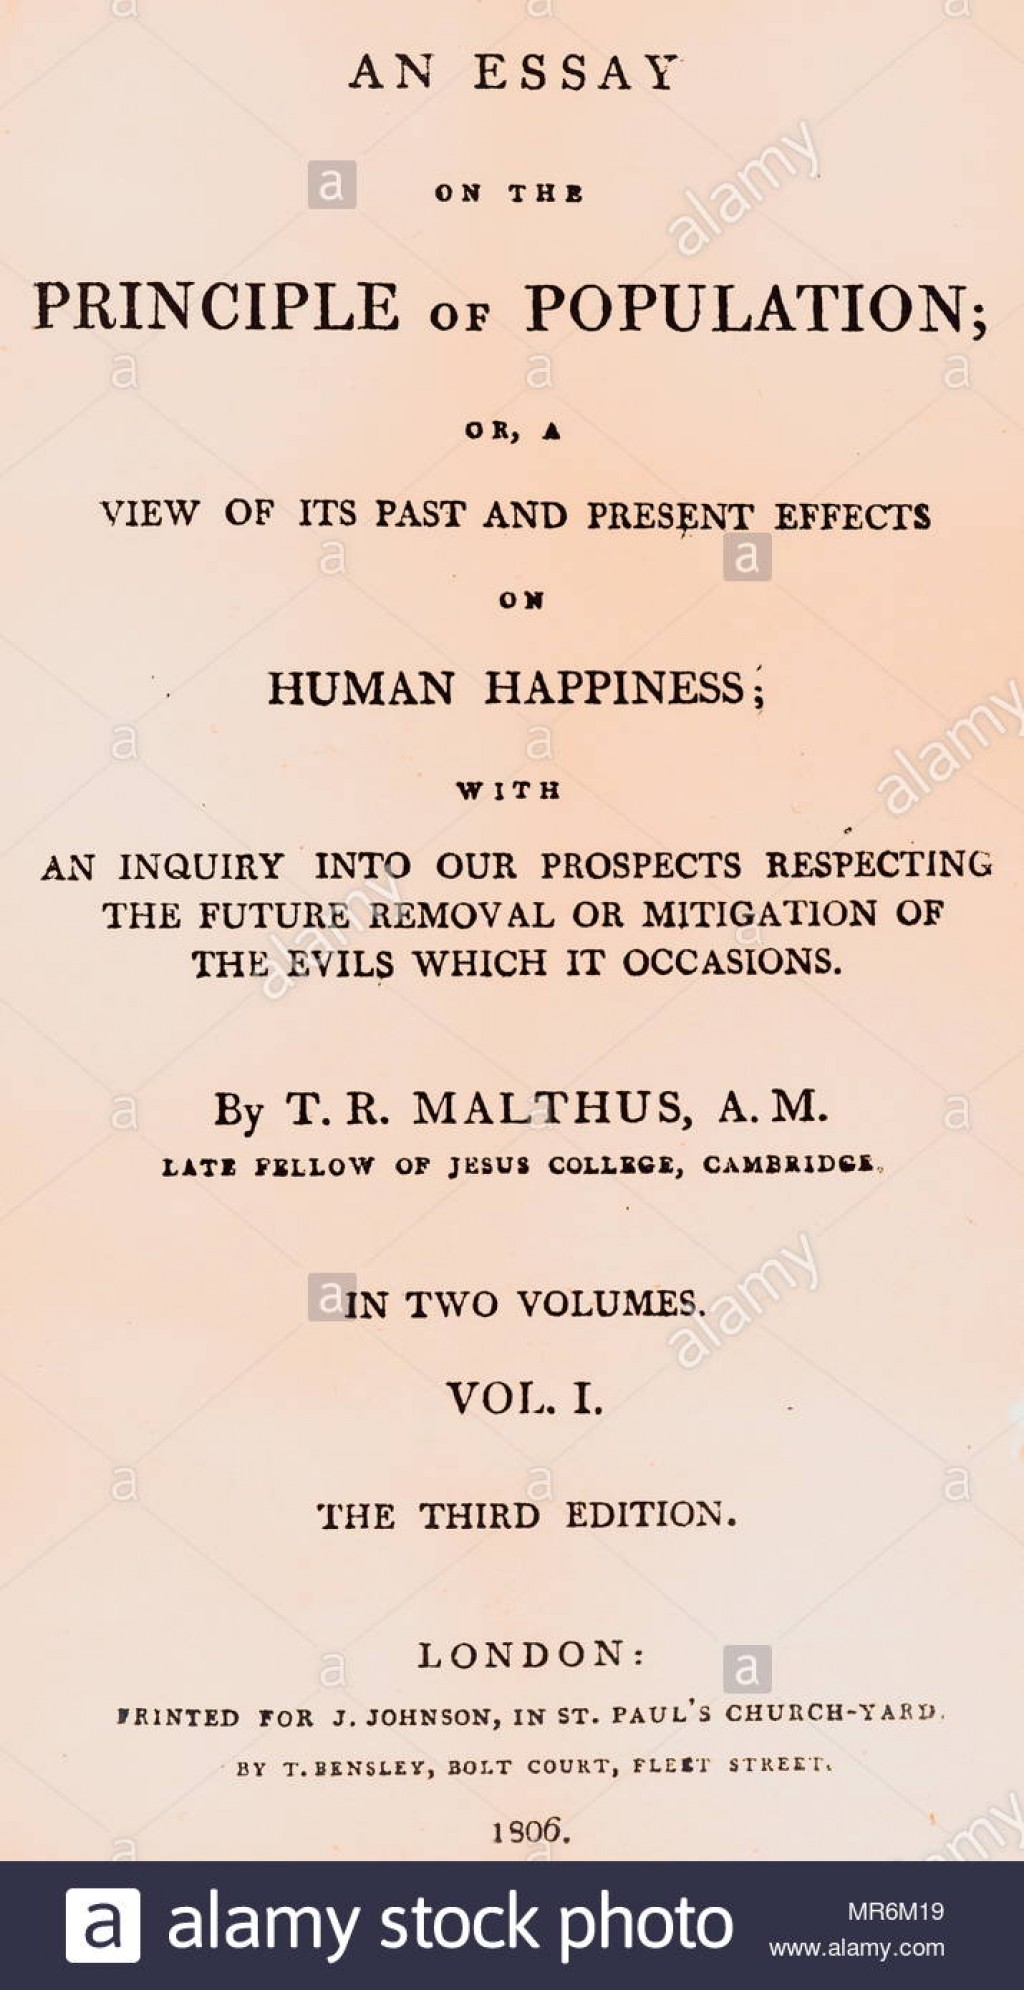 015 Essay Example Thomas Malthus On The Principle Of Population Title Page Written By Robert An English Cleric And Stupendous After Reading Malthus's Principles Darwin Got Idea That Ap Euro Large